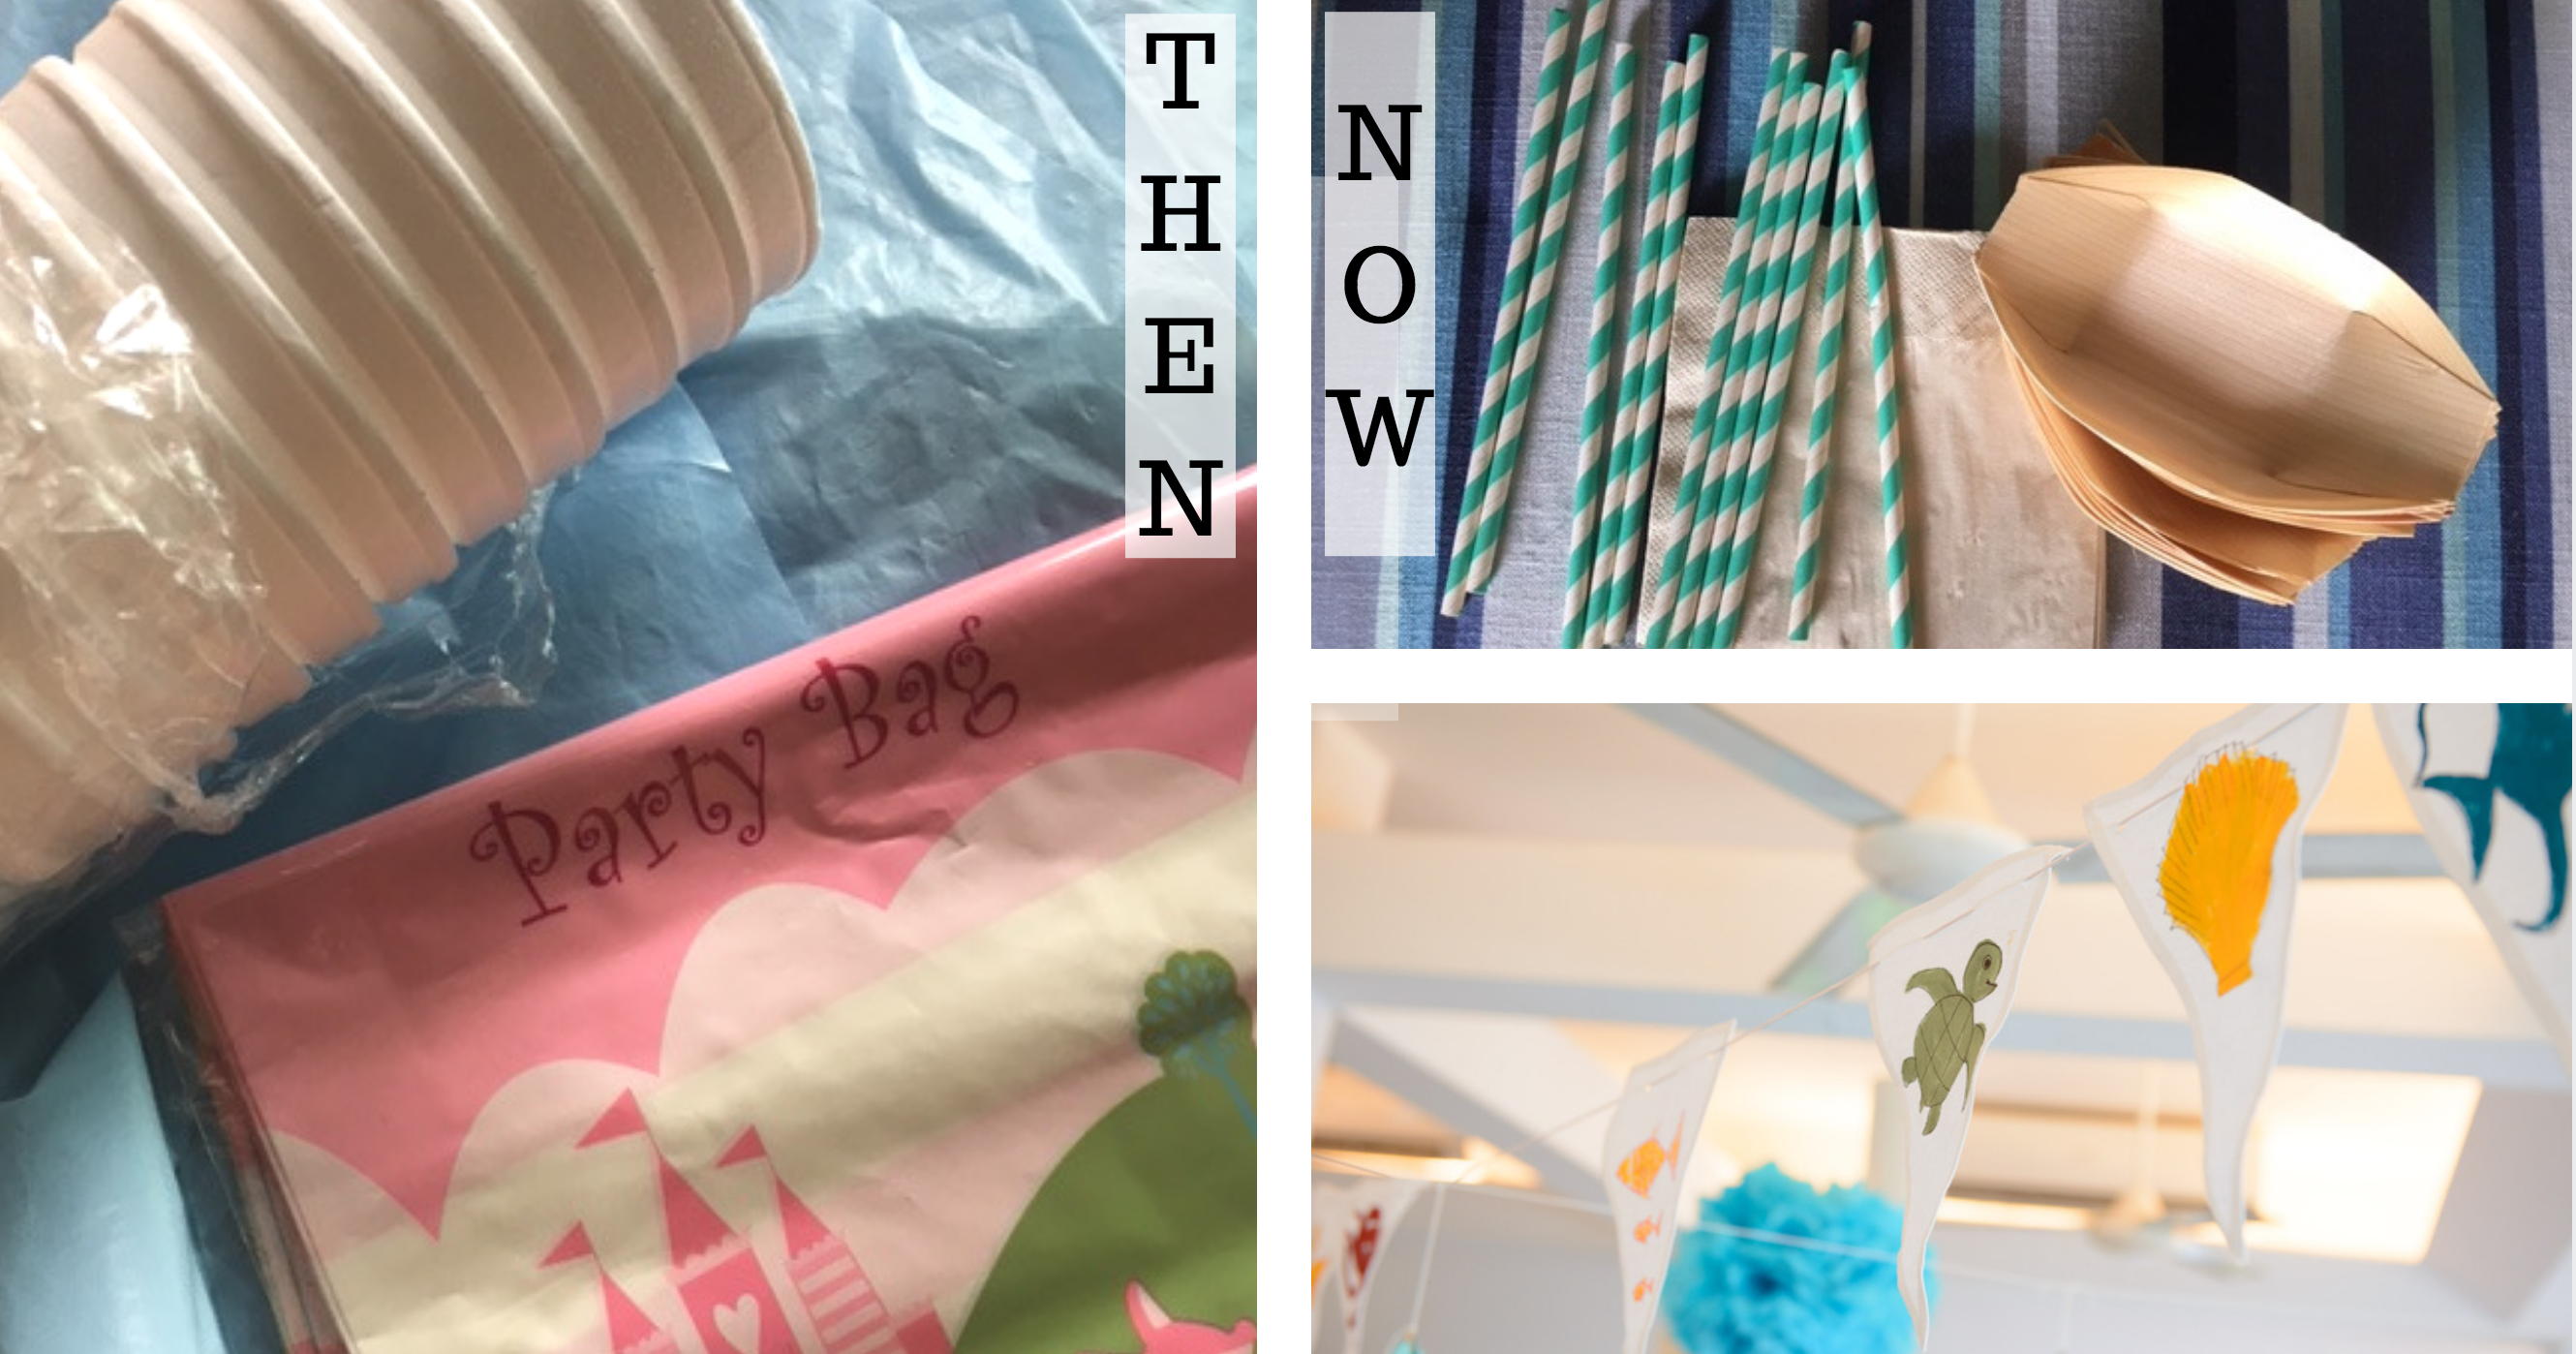 Then and Now: I have been guilty of using styrofoam glasses, cheap tablecovers that can't last and glitzy platic goodie bags in the past. Fast forward to nowadays - using cloth to create long-lasting and unique decor, plant-based disposables and paper straws.